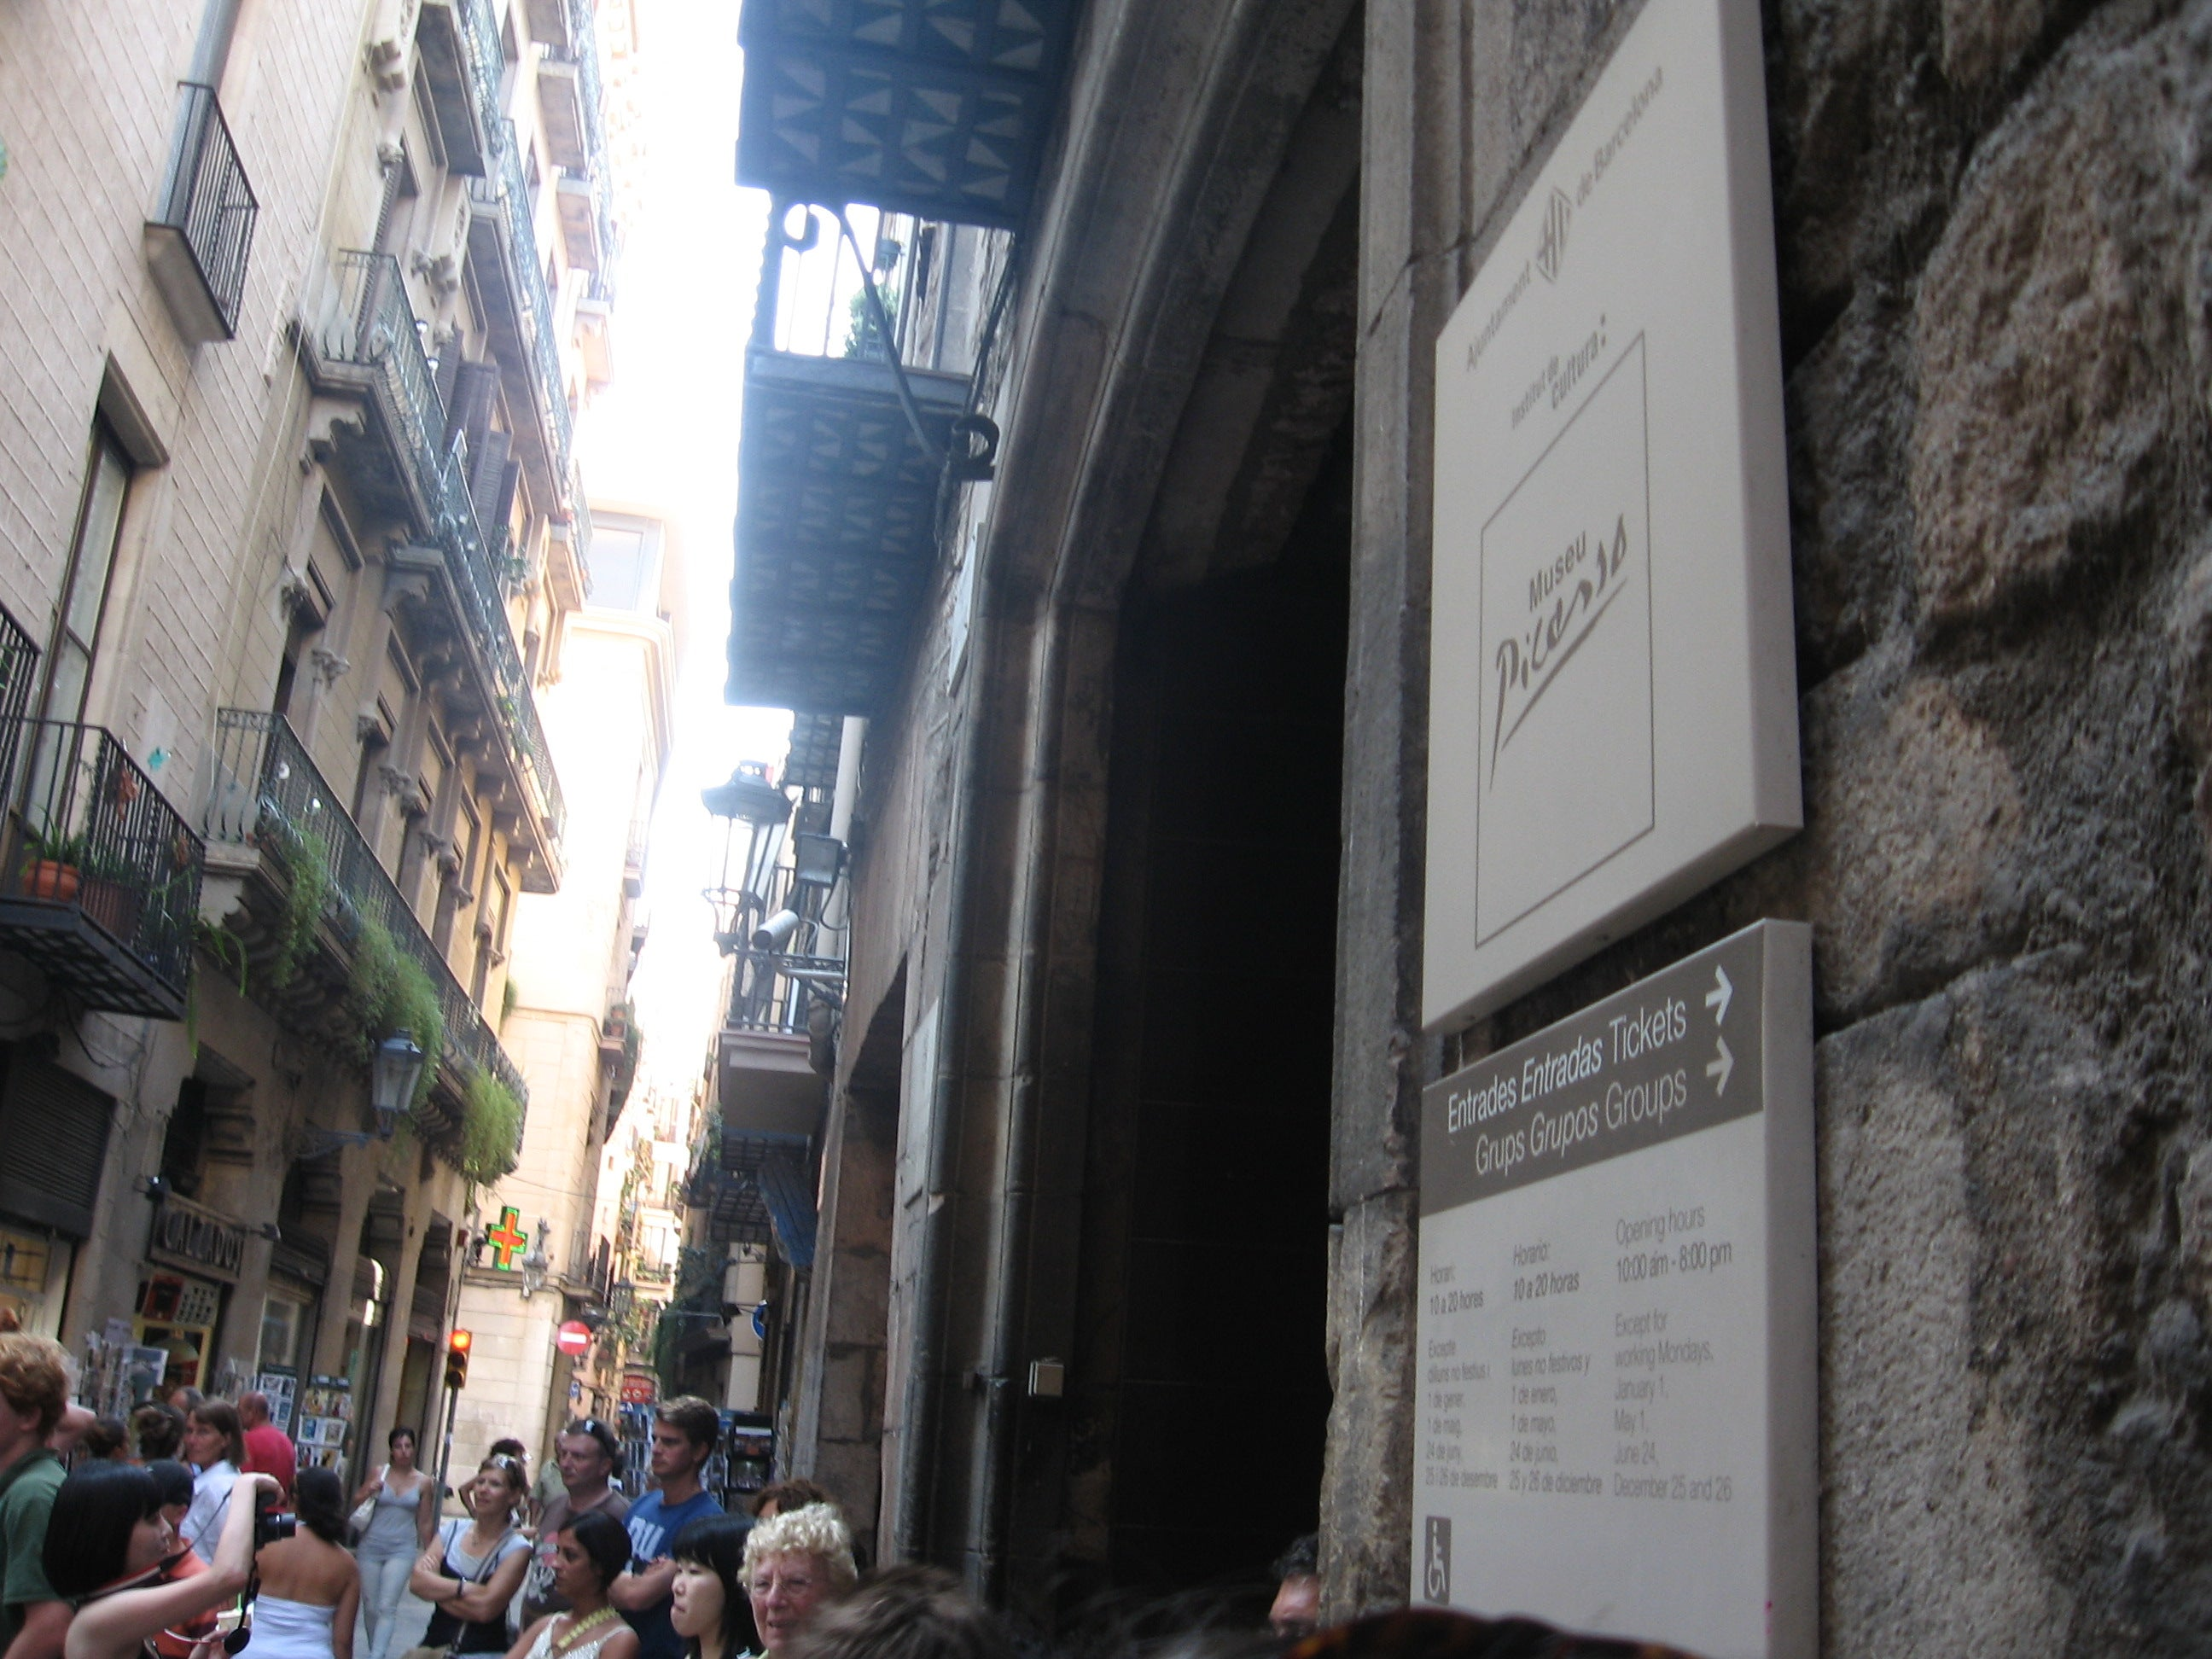 Calle en Museo Picasso